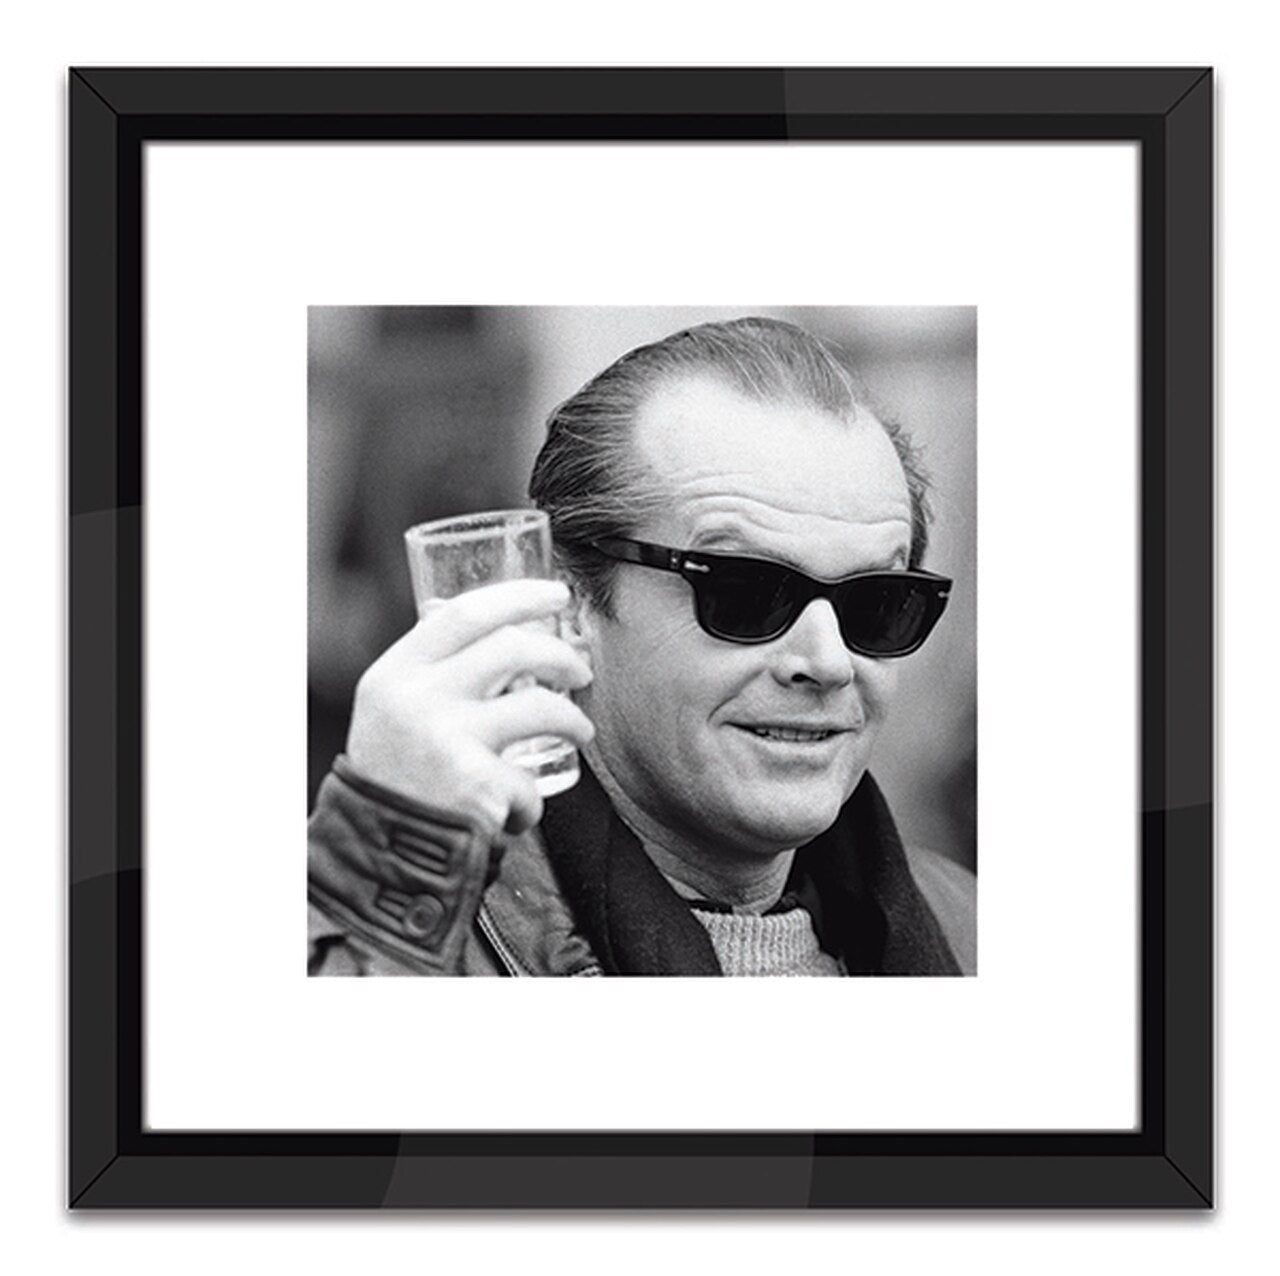 jack nicholson artwork worlds away black and white photo wall art square photo